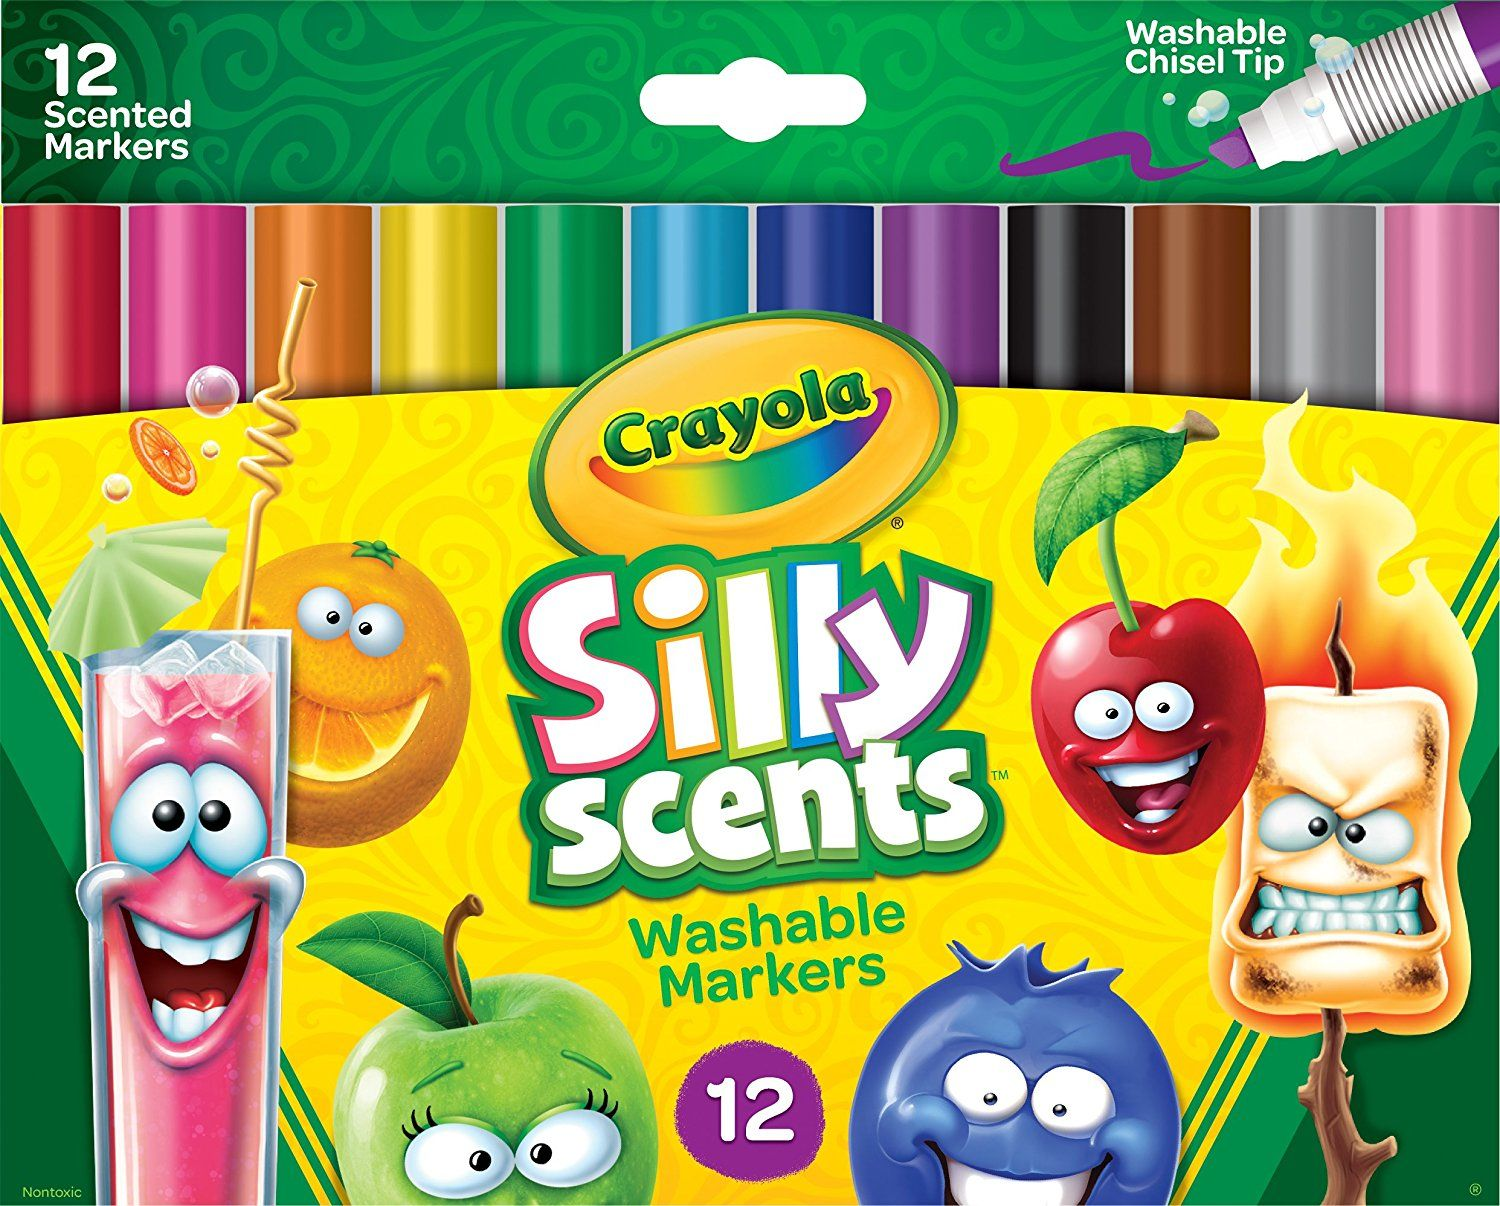 Crayola Silly Scents Washable Scented Markers 12 Count Pack Only 3 99 Lowest Price Become A Coupon Queen Washable Markers Crayola Gifts For Kids